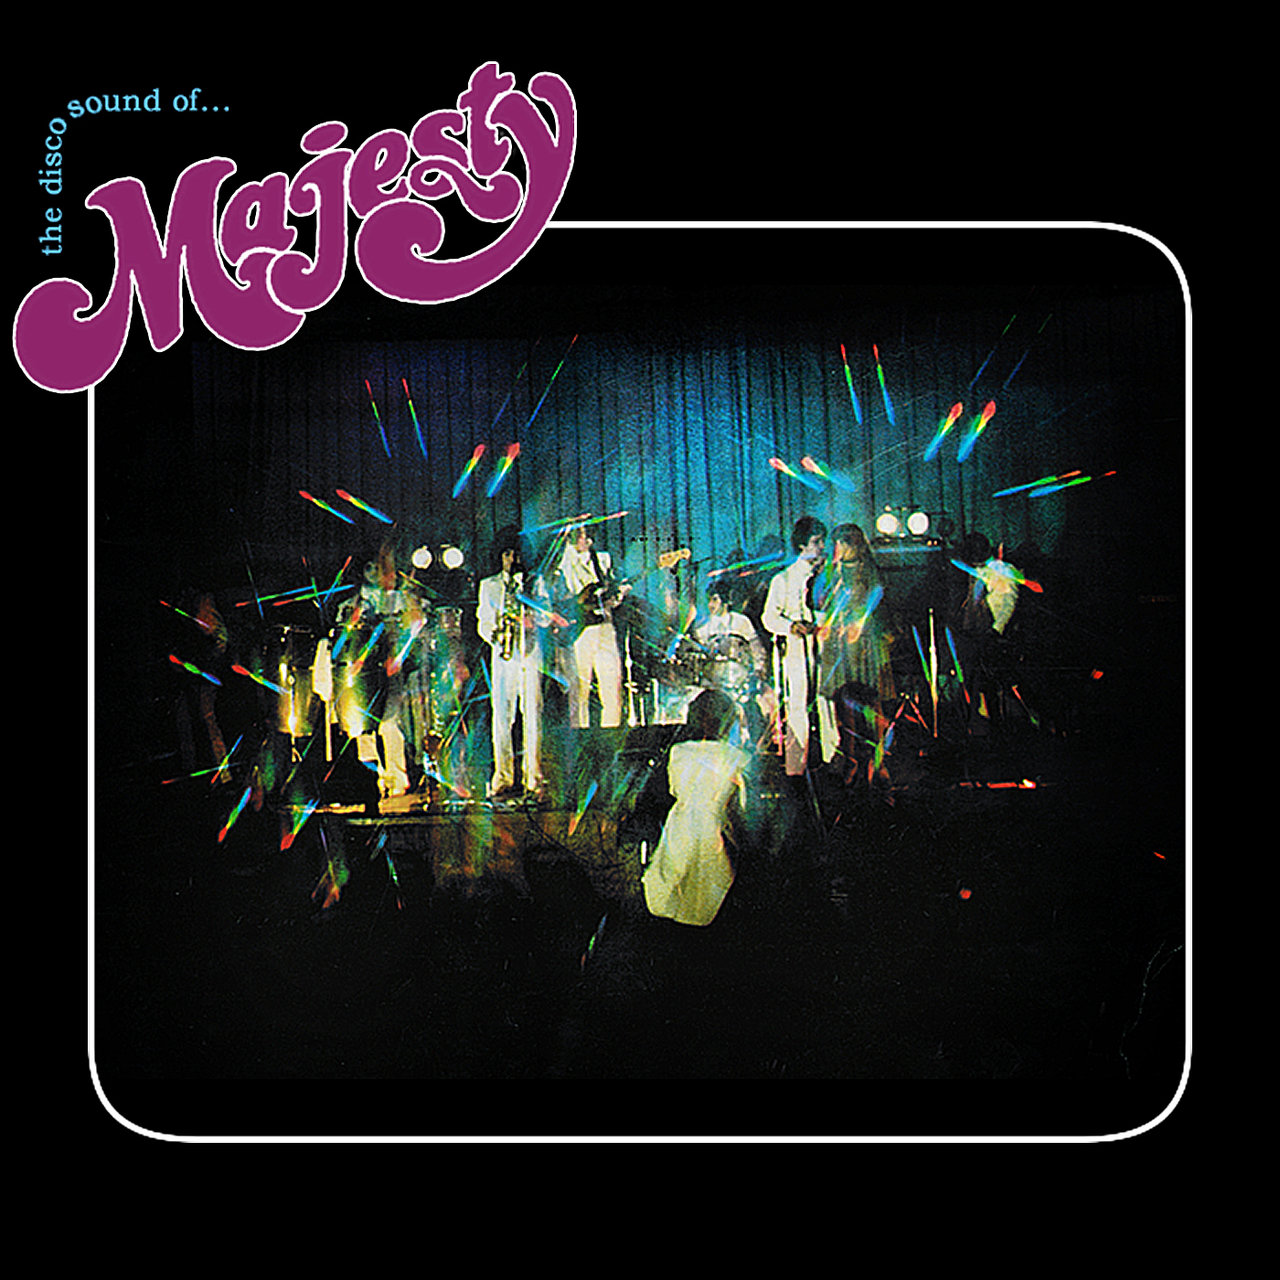 Majesty: The Disco Sound of